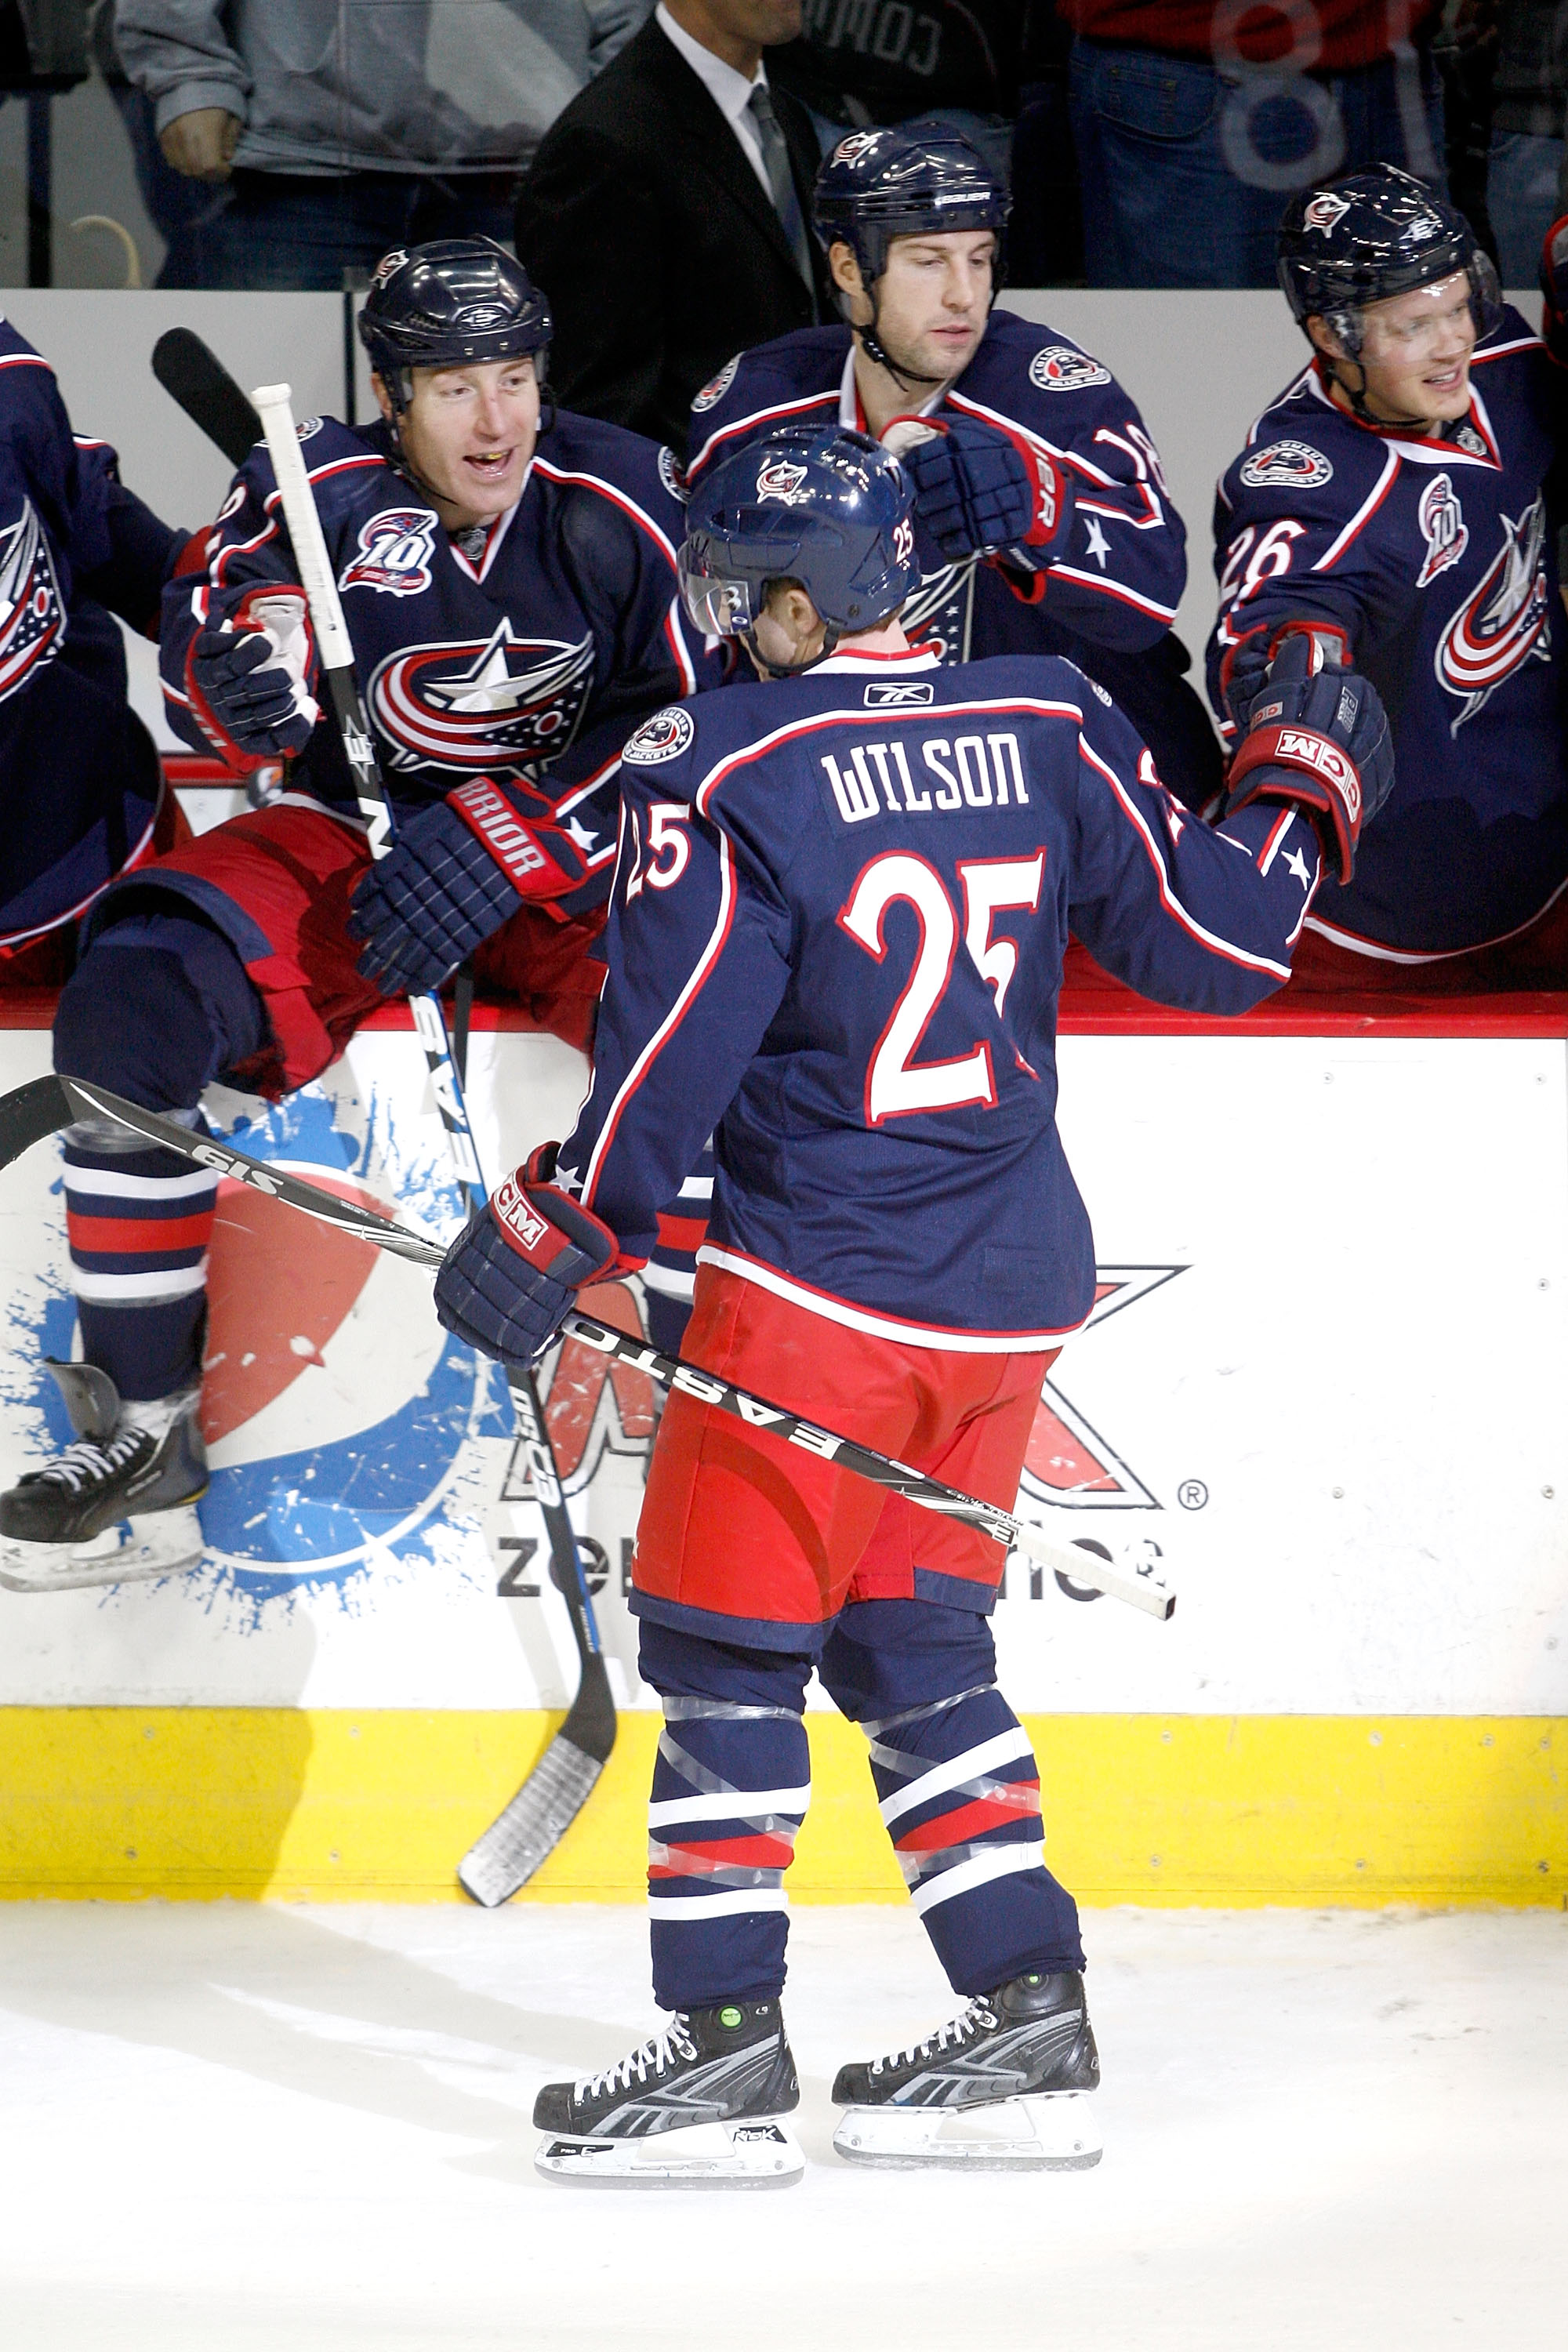 COLUMBUS, OH - DECEMBER 6:  Kyle Wilson #25 of the Columbus Blue Jackets is congratulated by his teammates after scoring the game winning goal against the Dallas Stars in a shootout on December 6, 2010 at Nationwide Arena in Columbus, Ohio.  Columbus defe